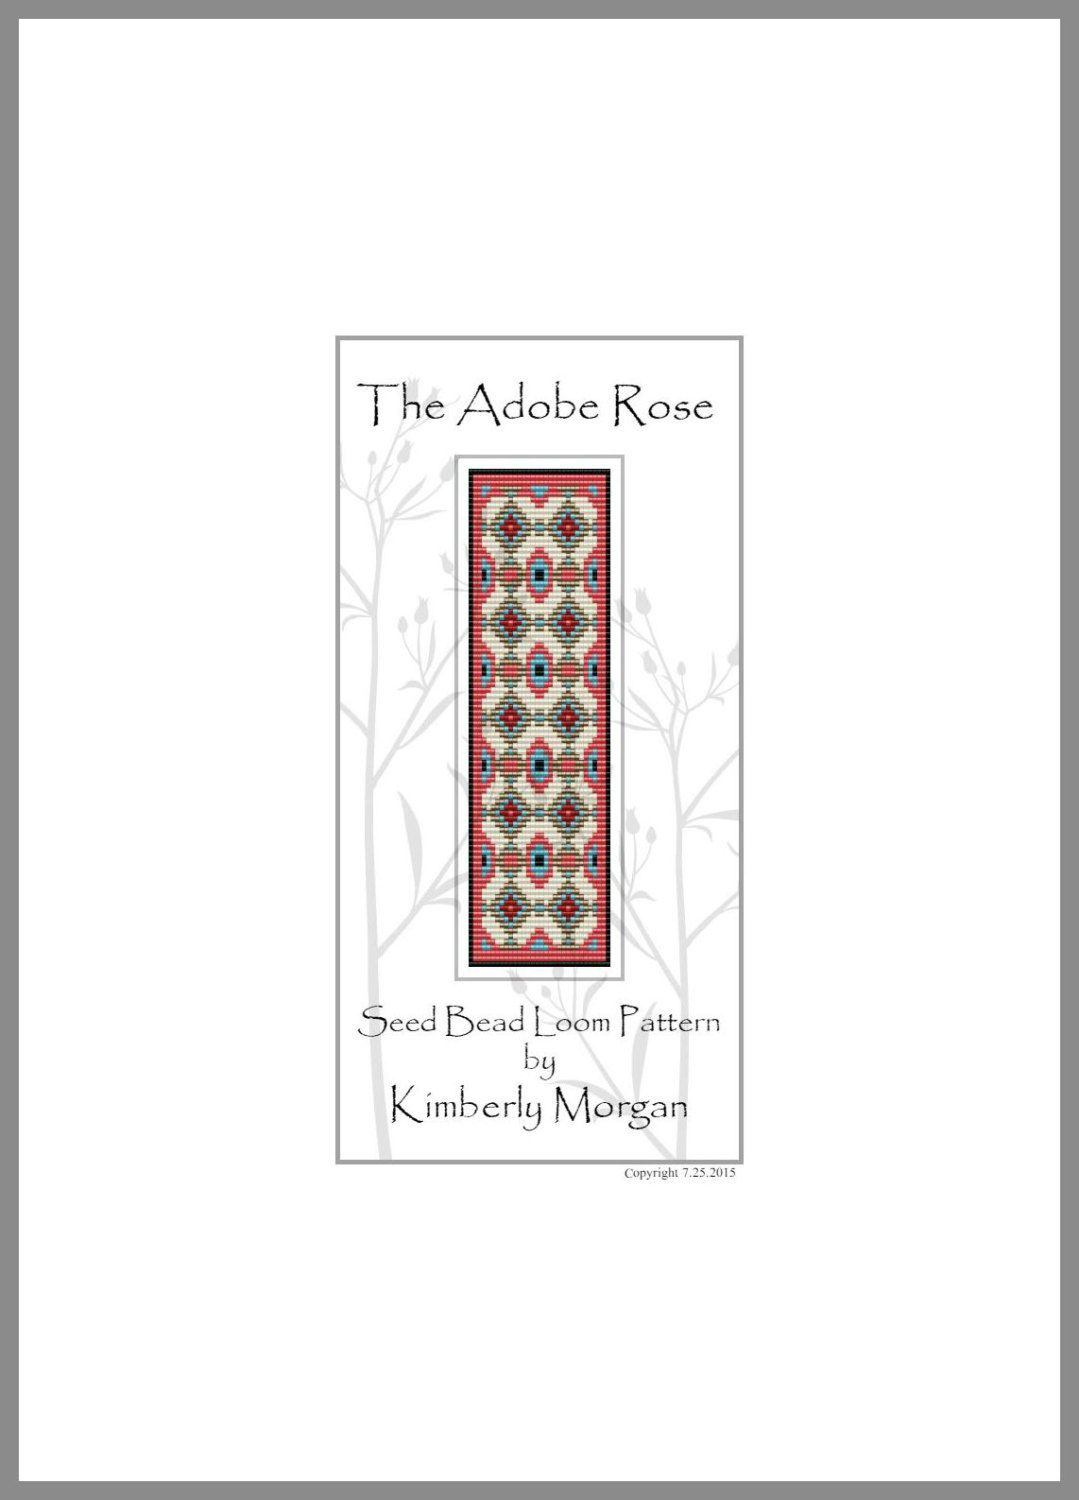 The Adobe Rose Loom Pattern PDF contains Color Graphs and